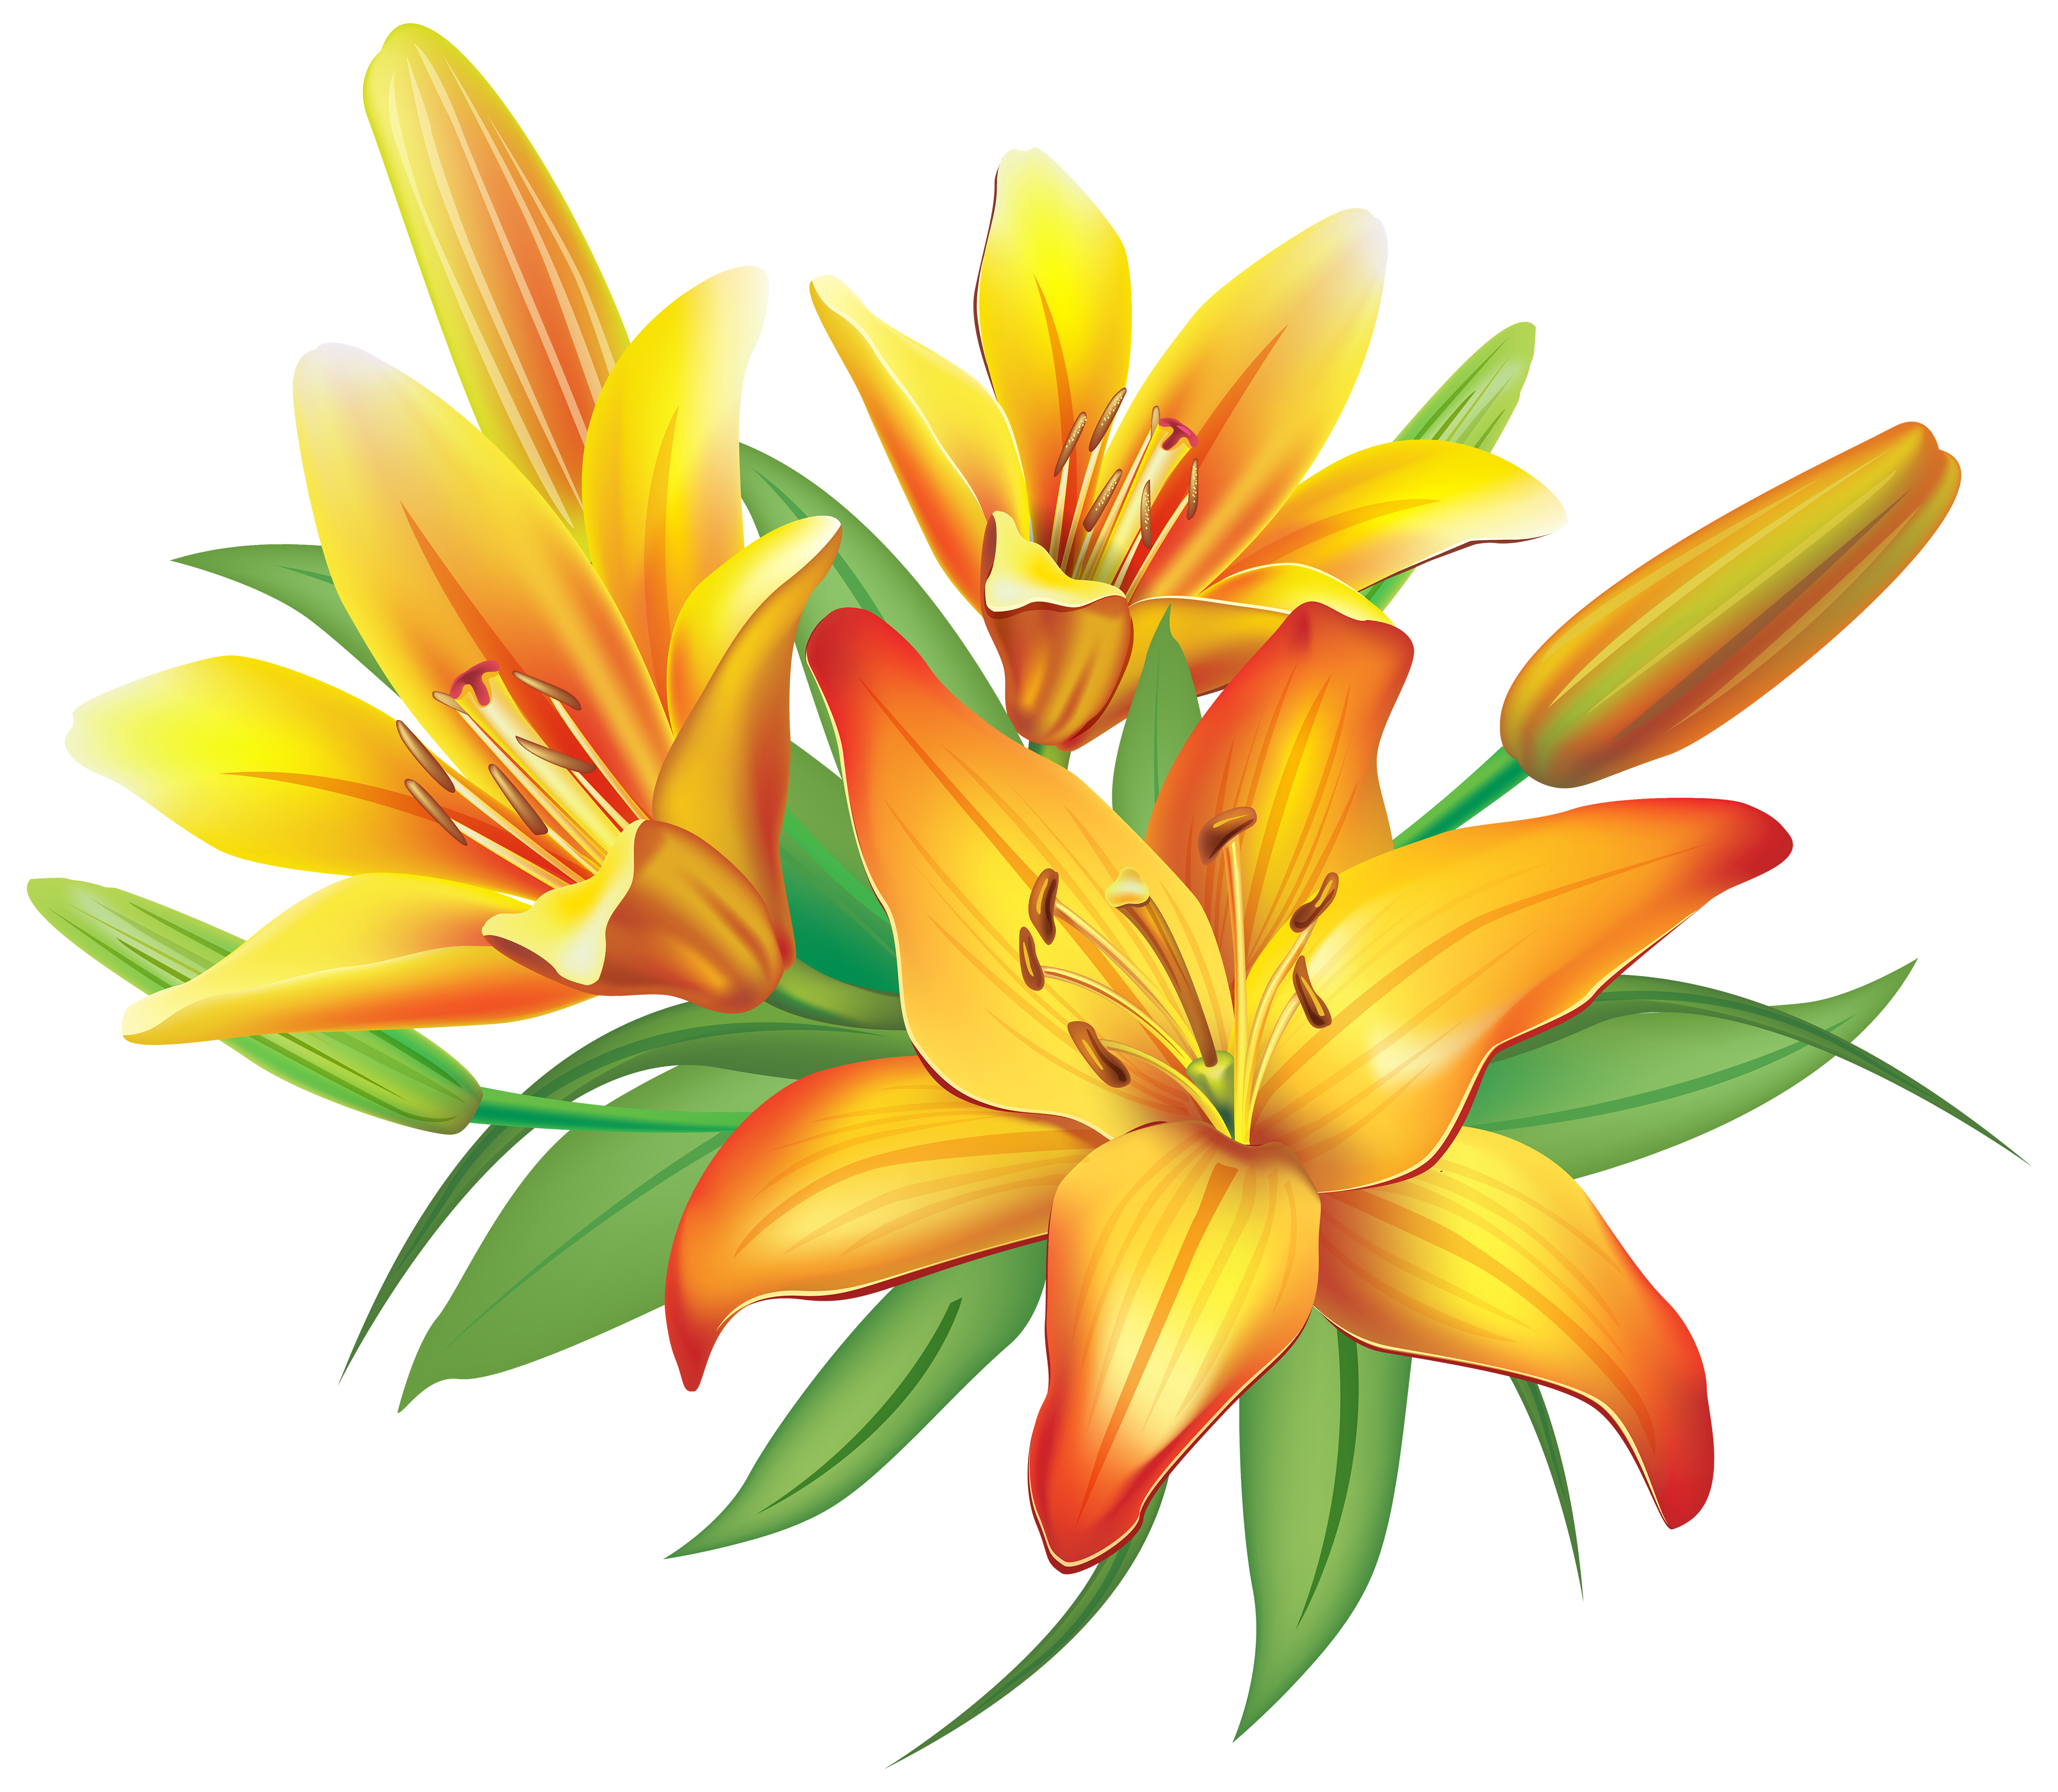 Yellow Flower clipart png format Clipart Red Transparent clipart flower